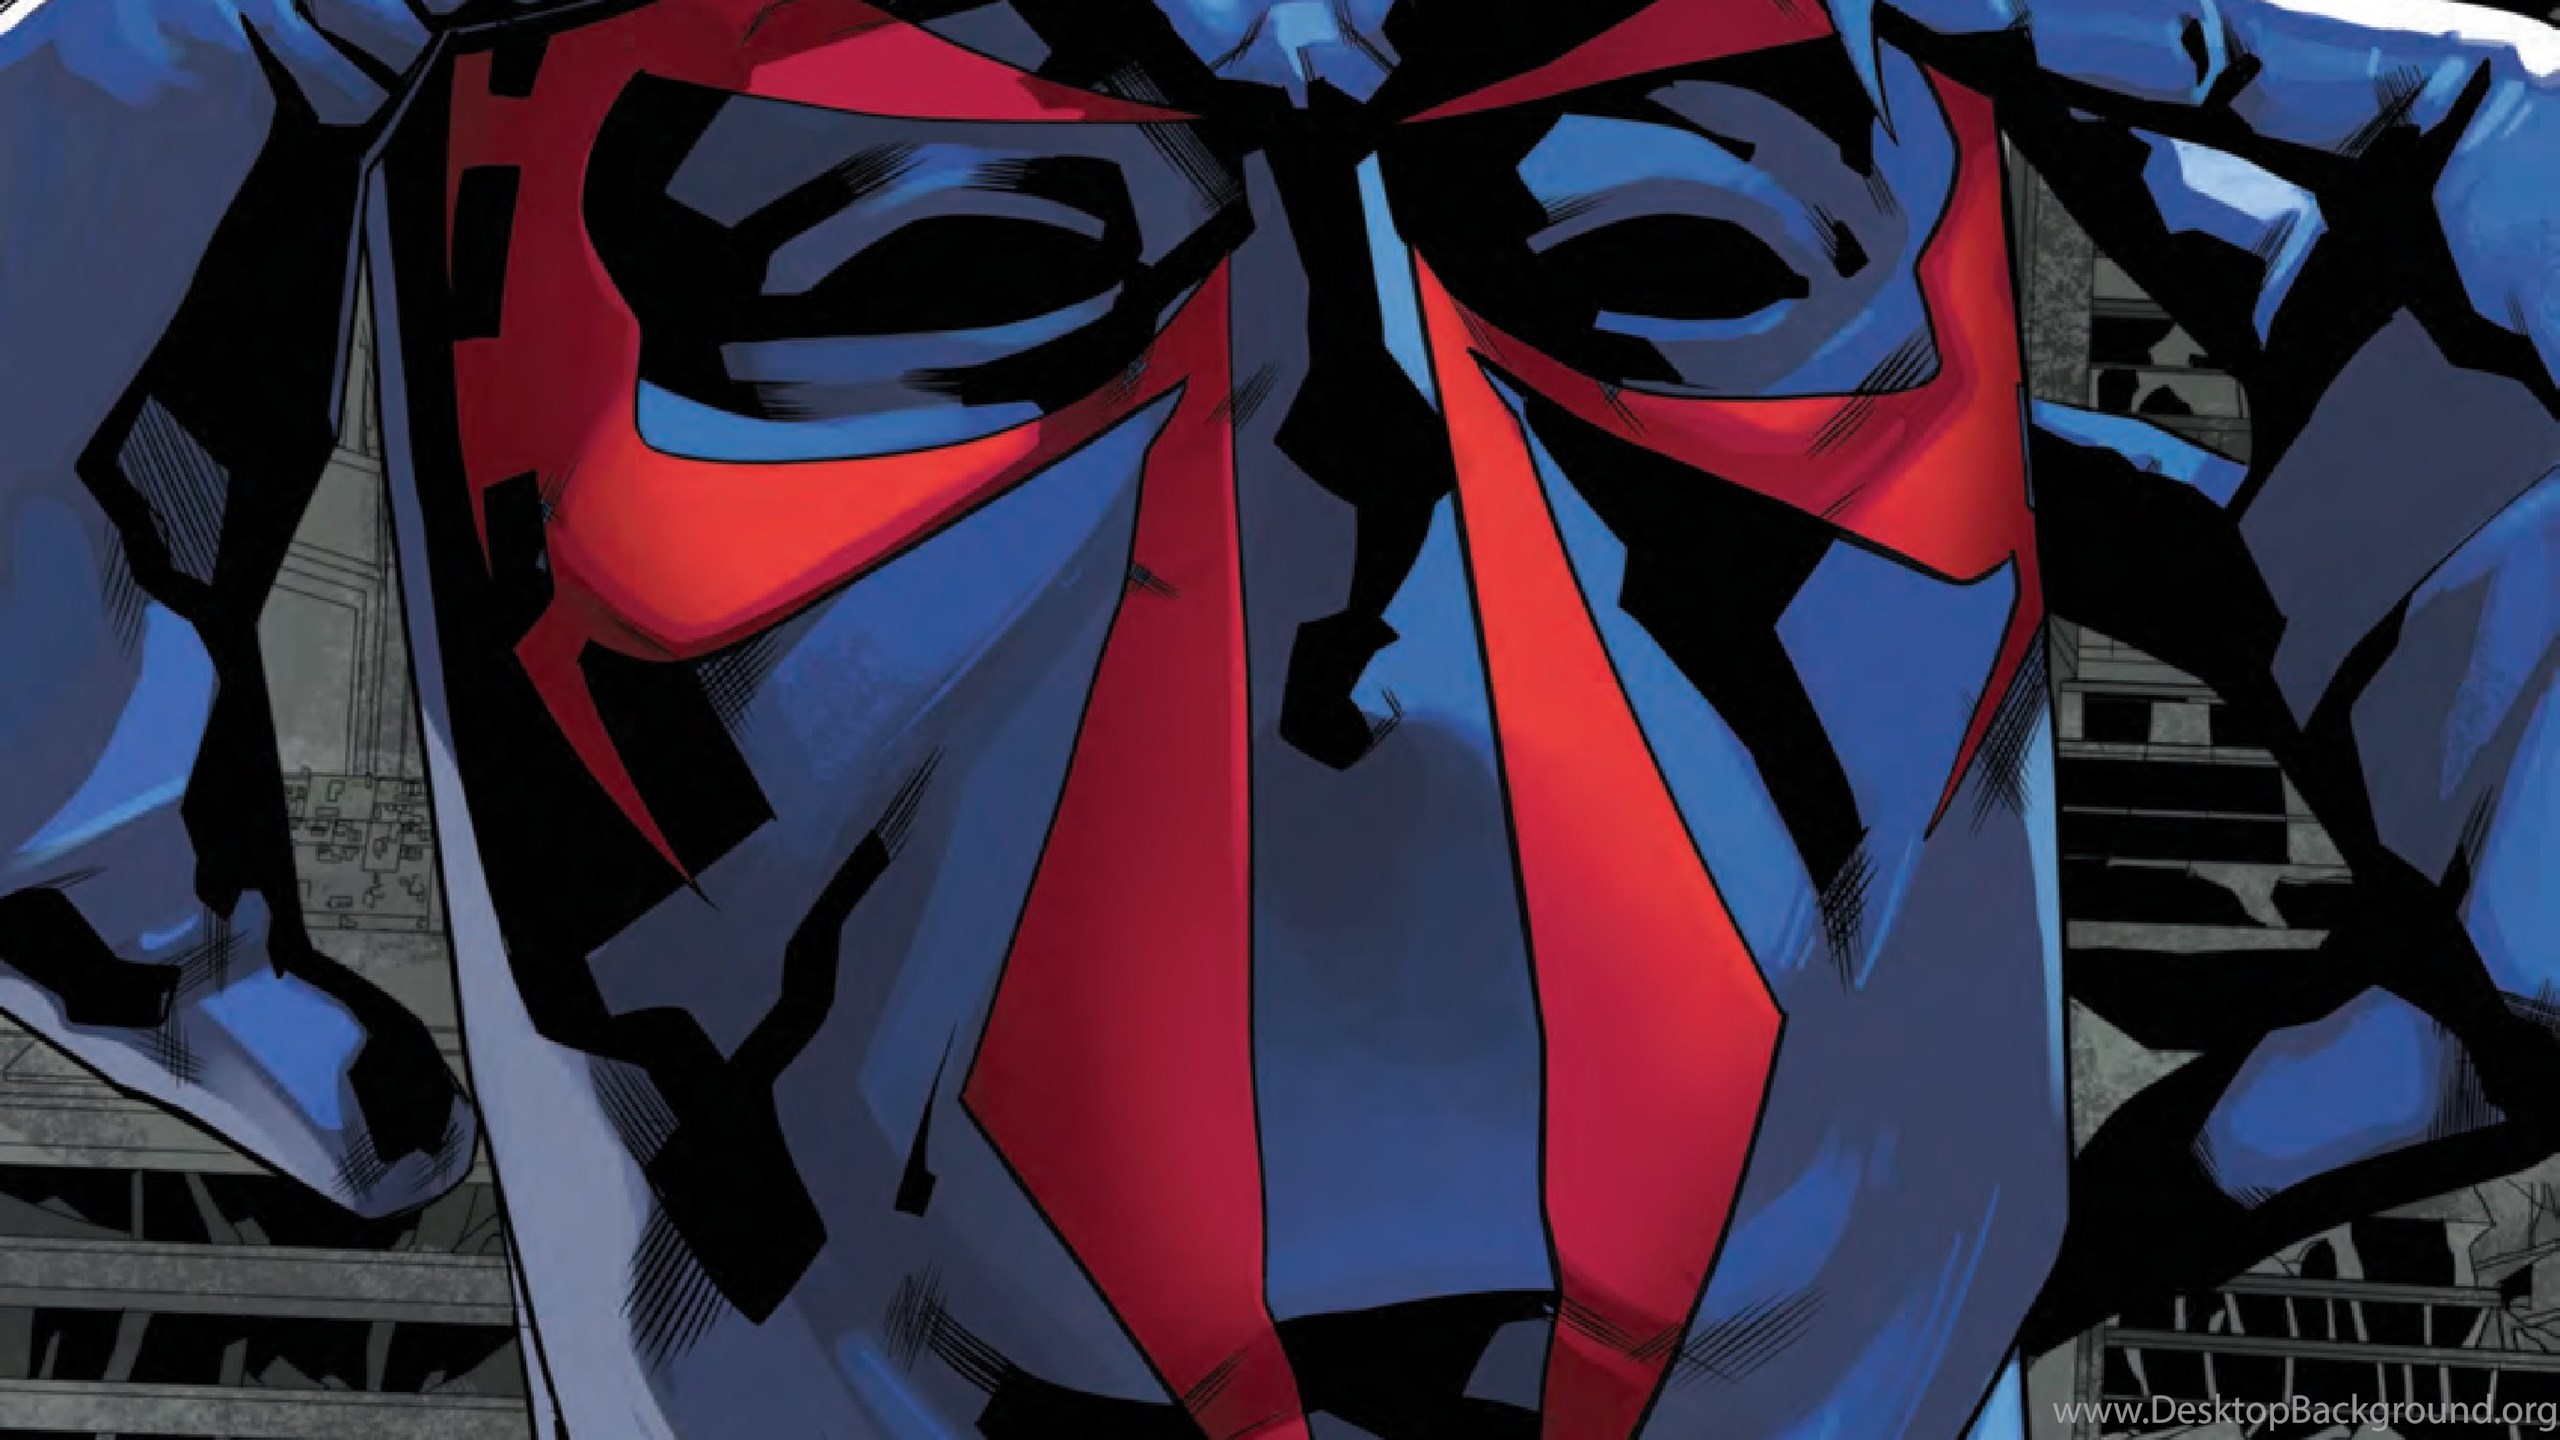 Cool Spiderman 2099 Wallpaper: Spiderman 2099 Backgrounds Wallpapers Attachment 13279 HD